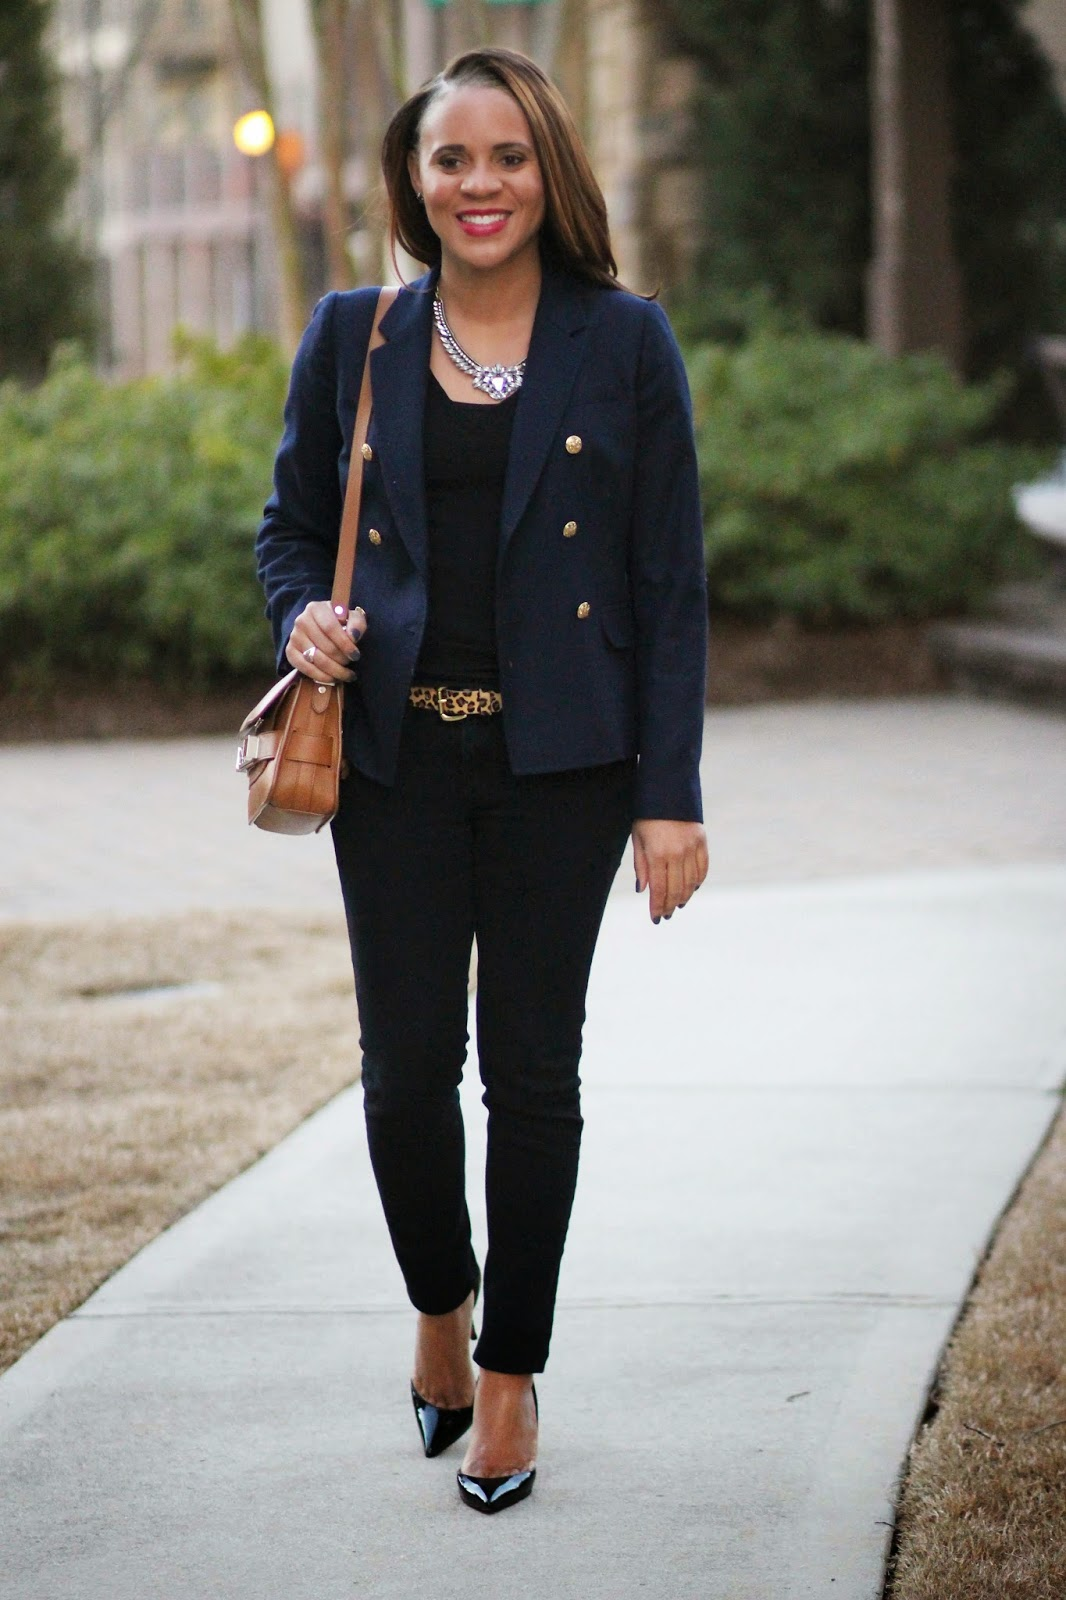 Nicole-to-the-nines-navy-shrunken-blazer